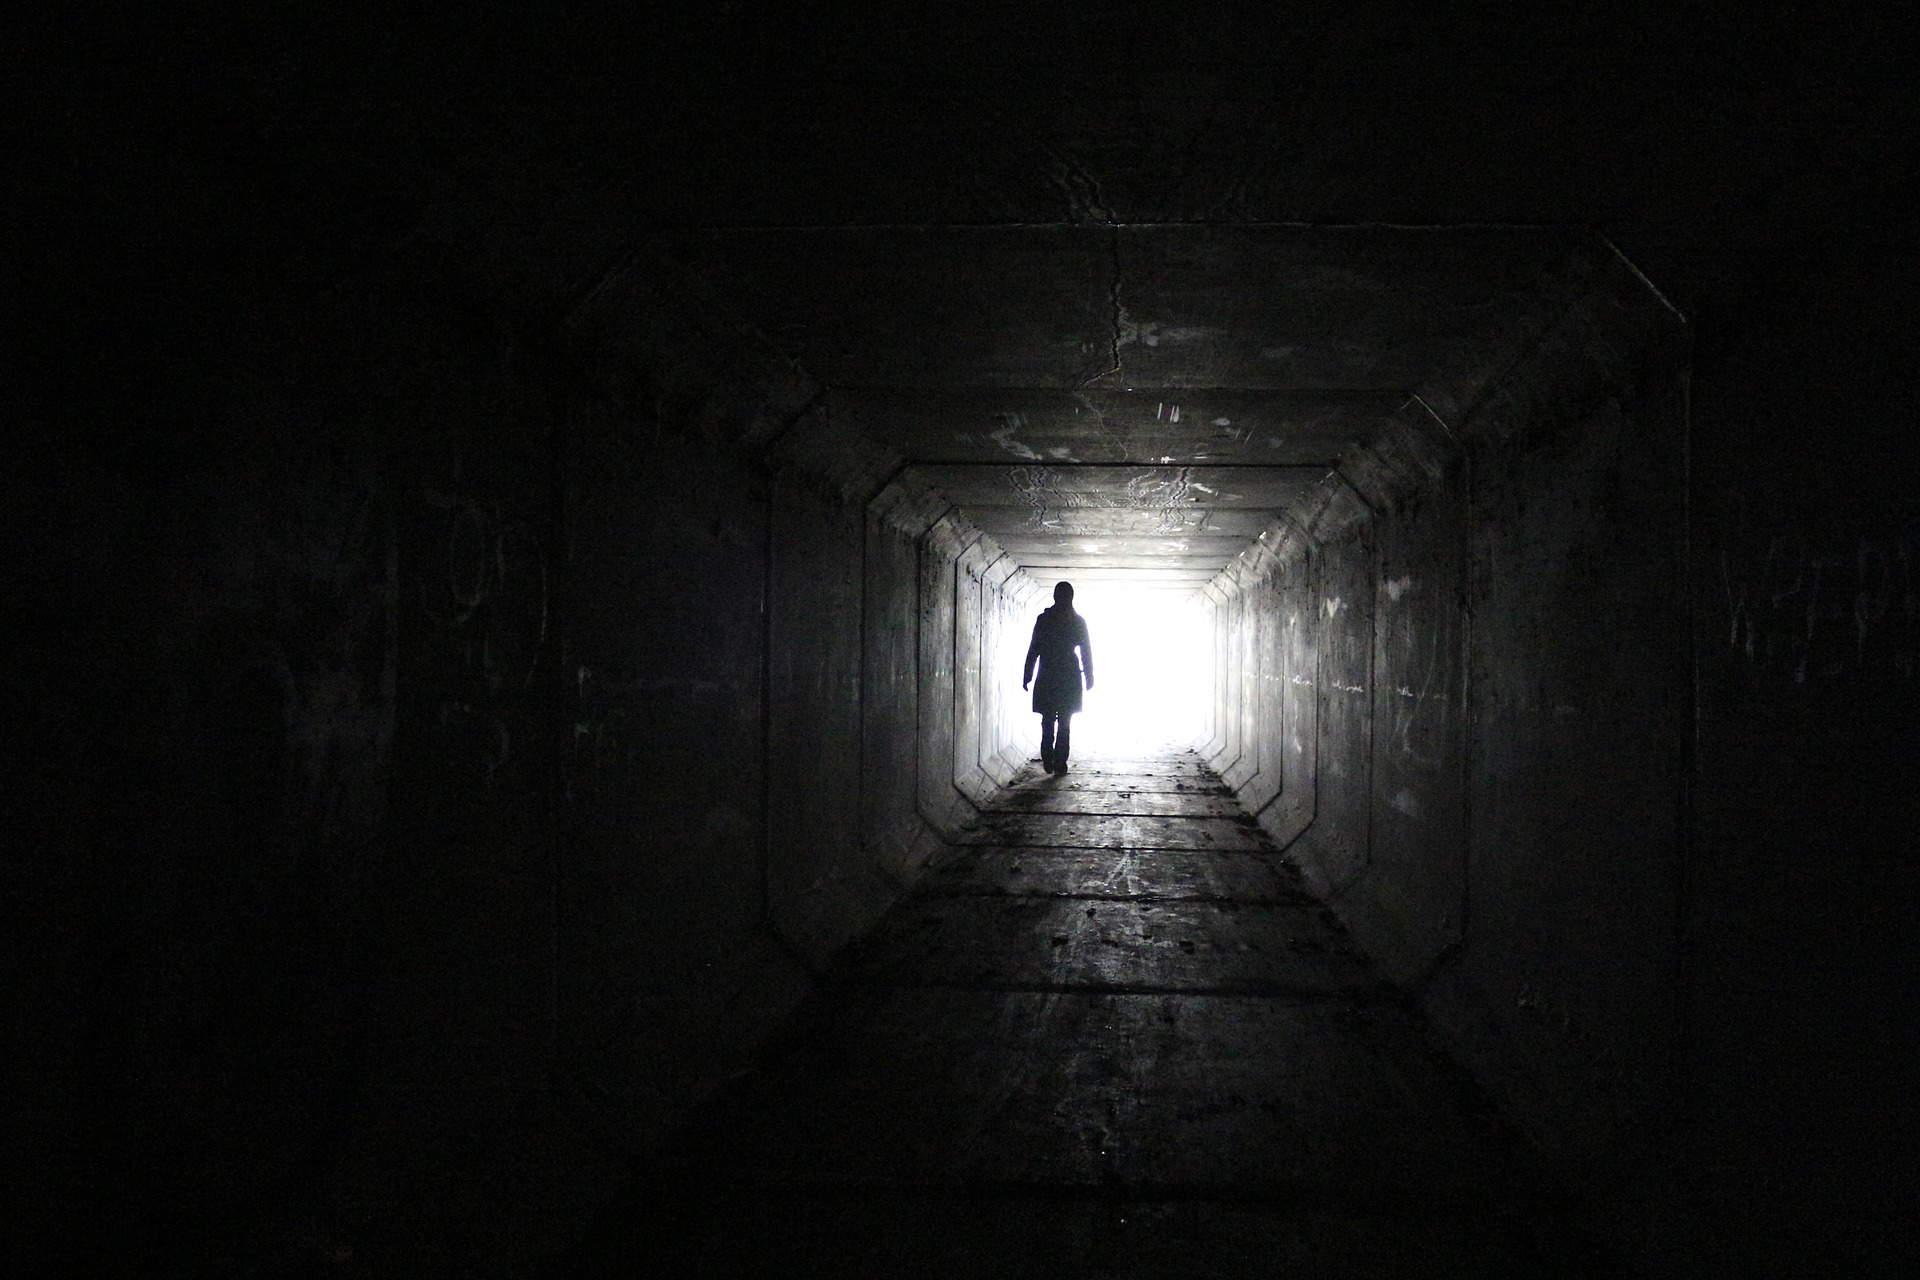 Tunnel, Halle, Person, Dunkelheit, Schatten, Licht, Eingabe - Wallpaper HD - Prof.-falken.com